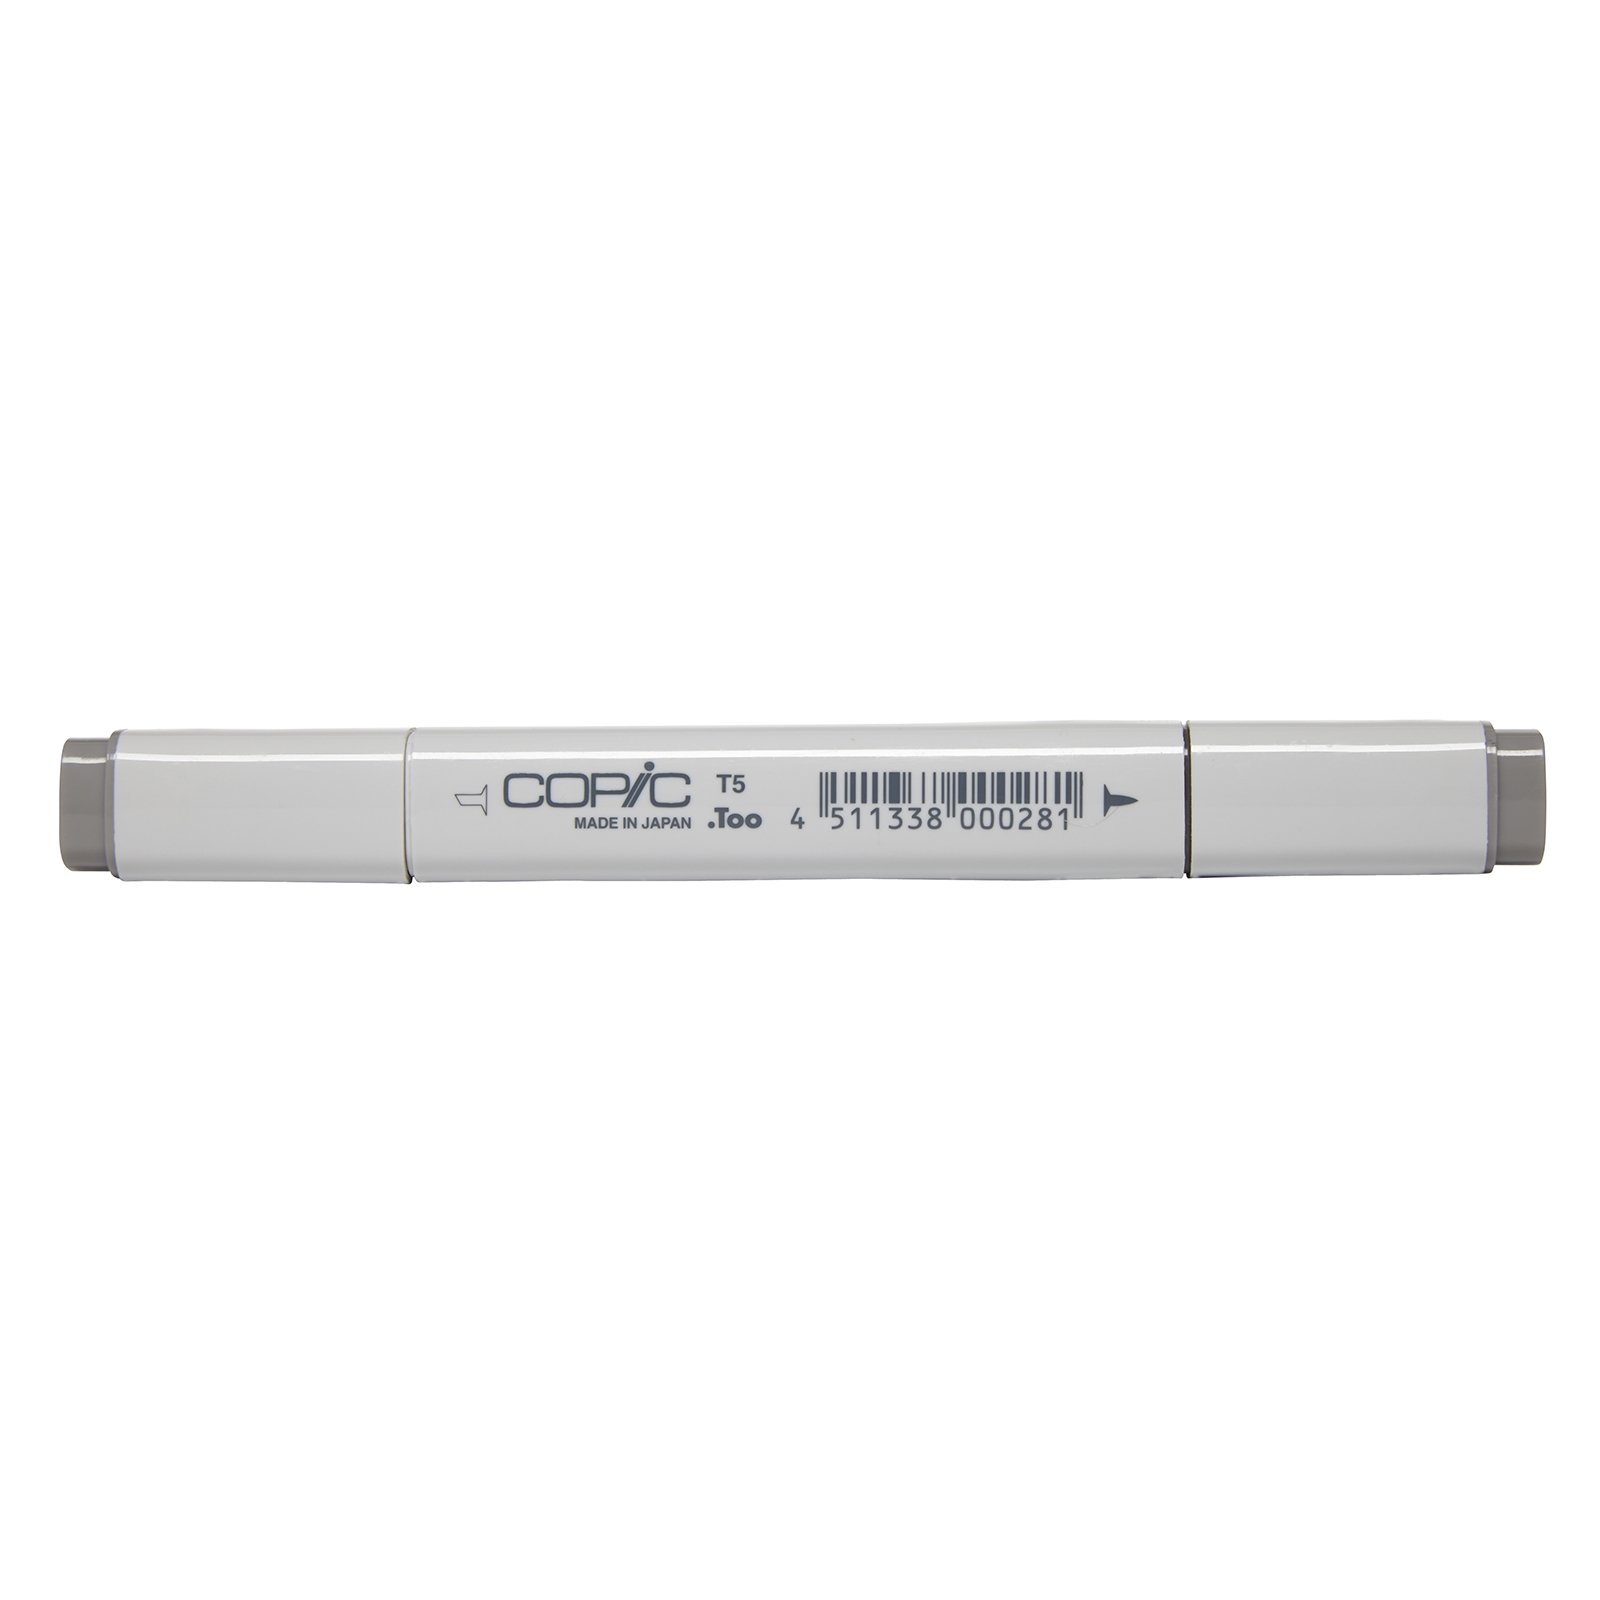 Copic Marker with Replaceable Nib, T5-Copic, Toner Gray